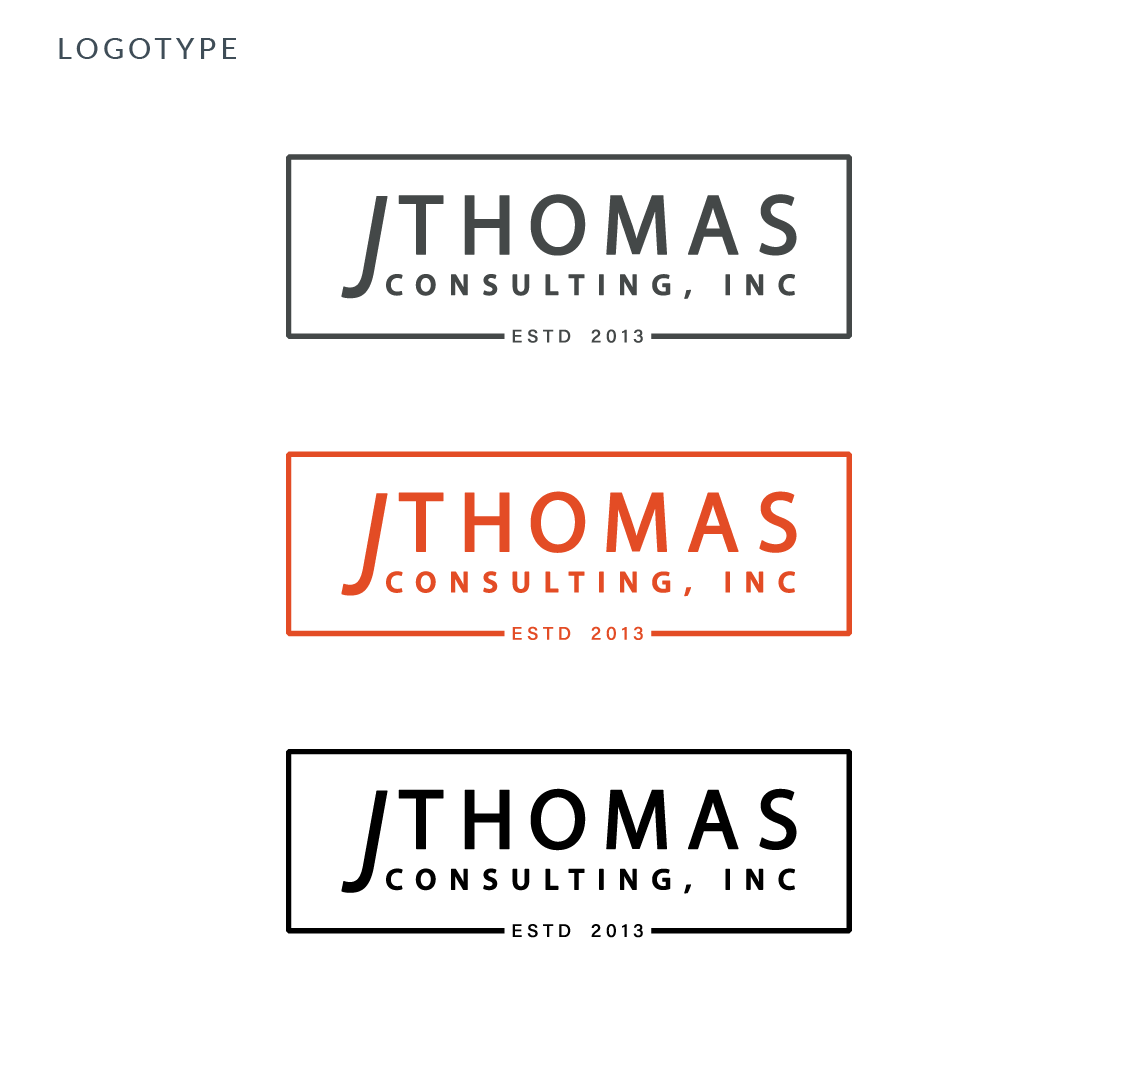 j thomas consulting-63.png